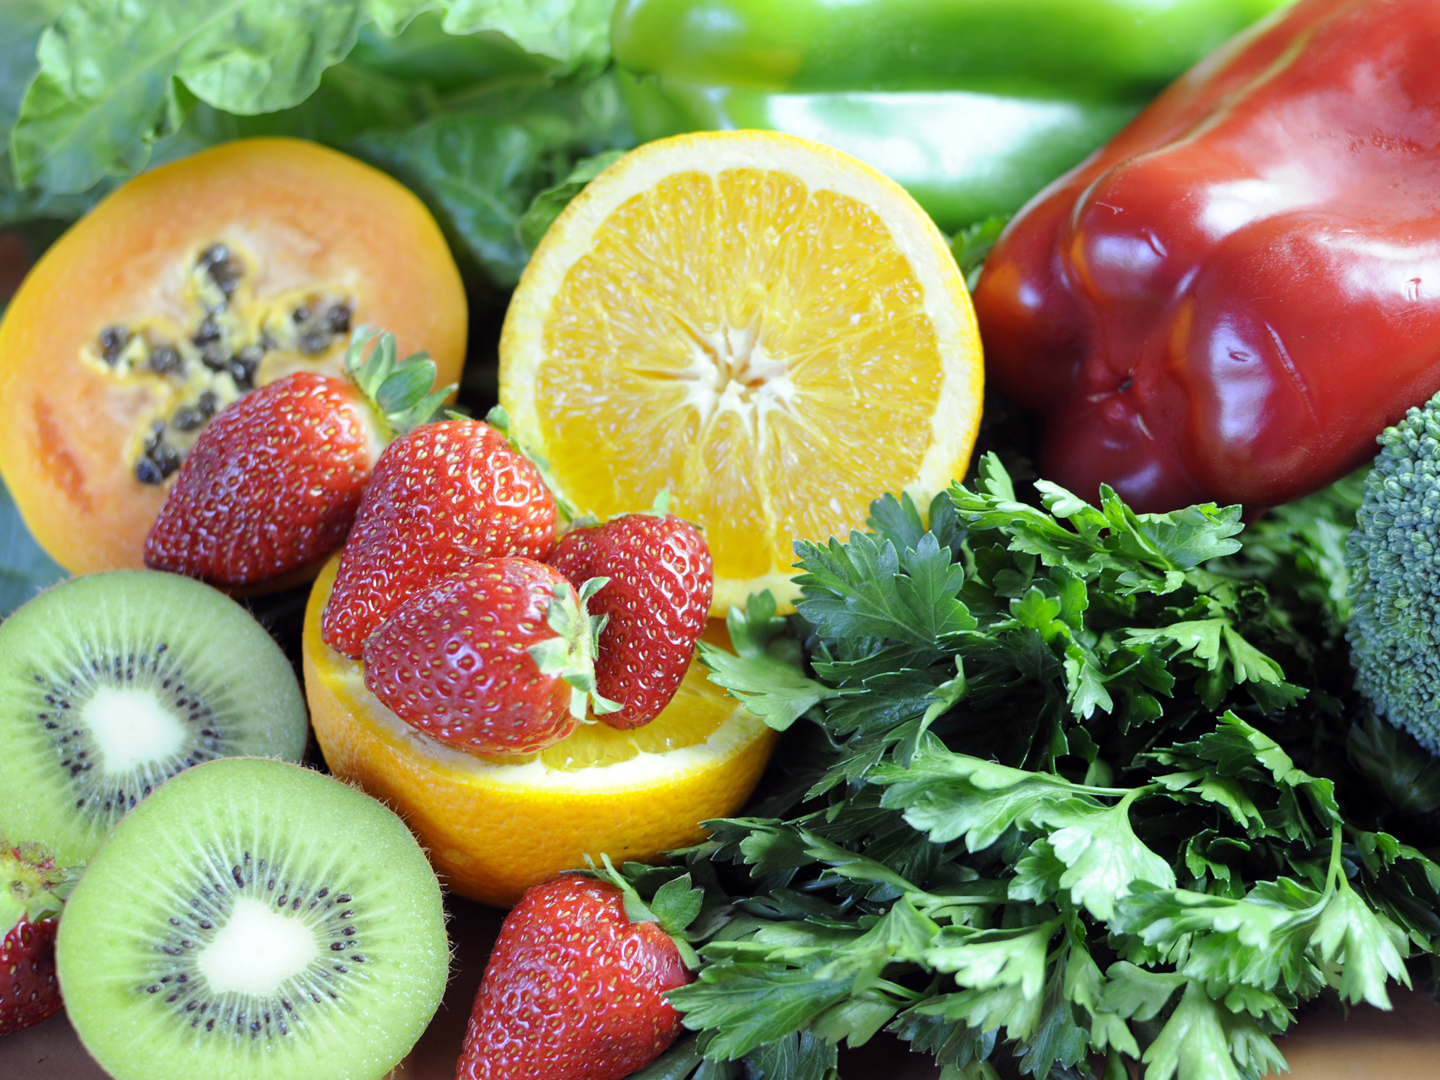 An image of fruits rich in antioxidants. Antioxidants can reduce anxiety.